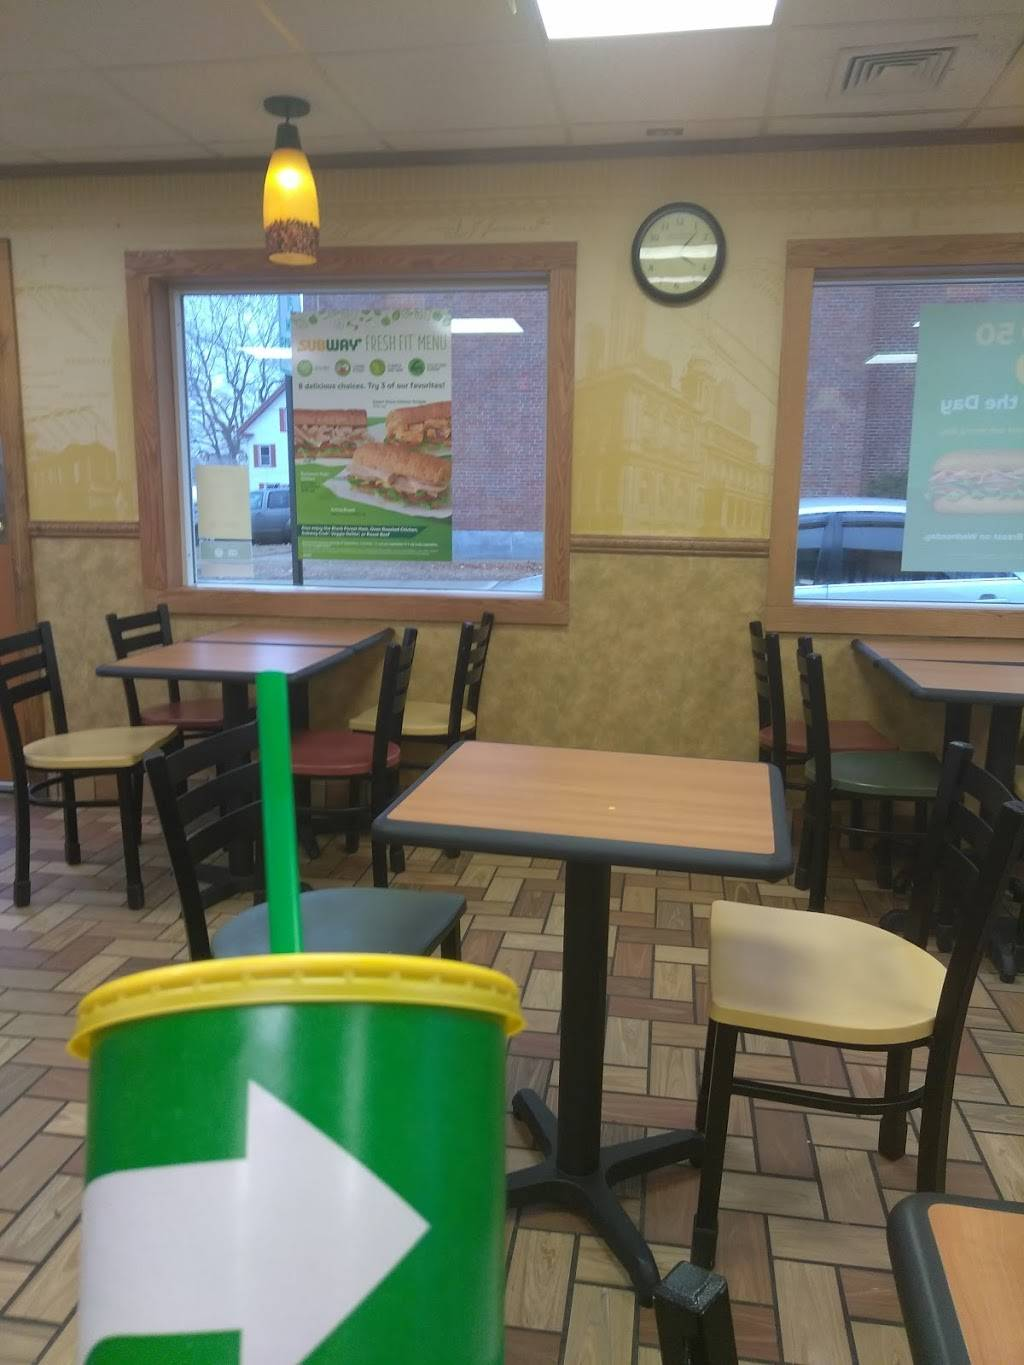 Subway   restaurant   33 High St, Willimantic, CT 06226, USA   8604238585 OR +1 860-423-8585